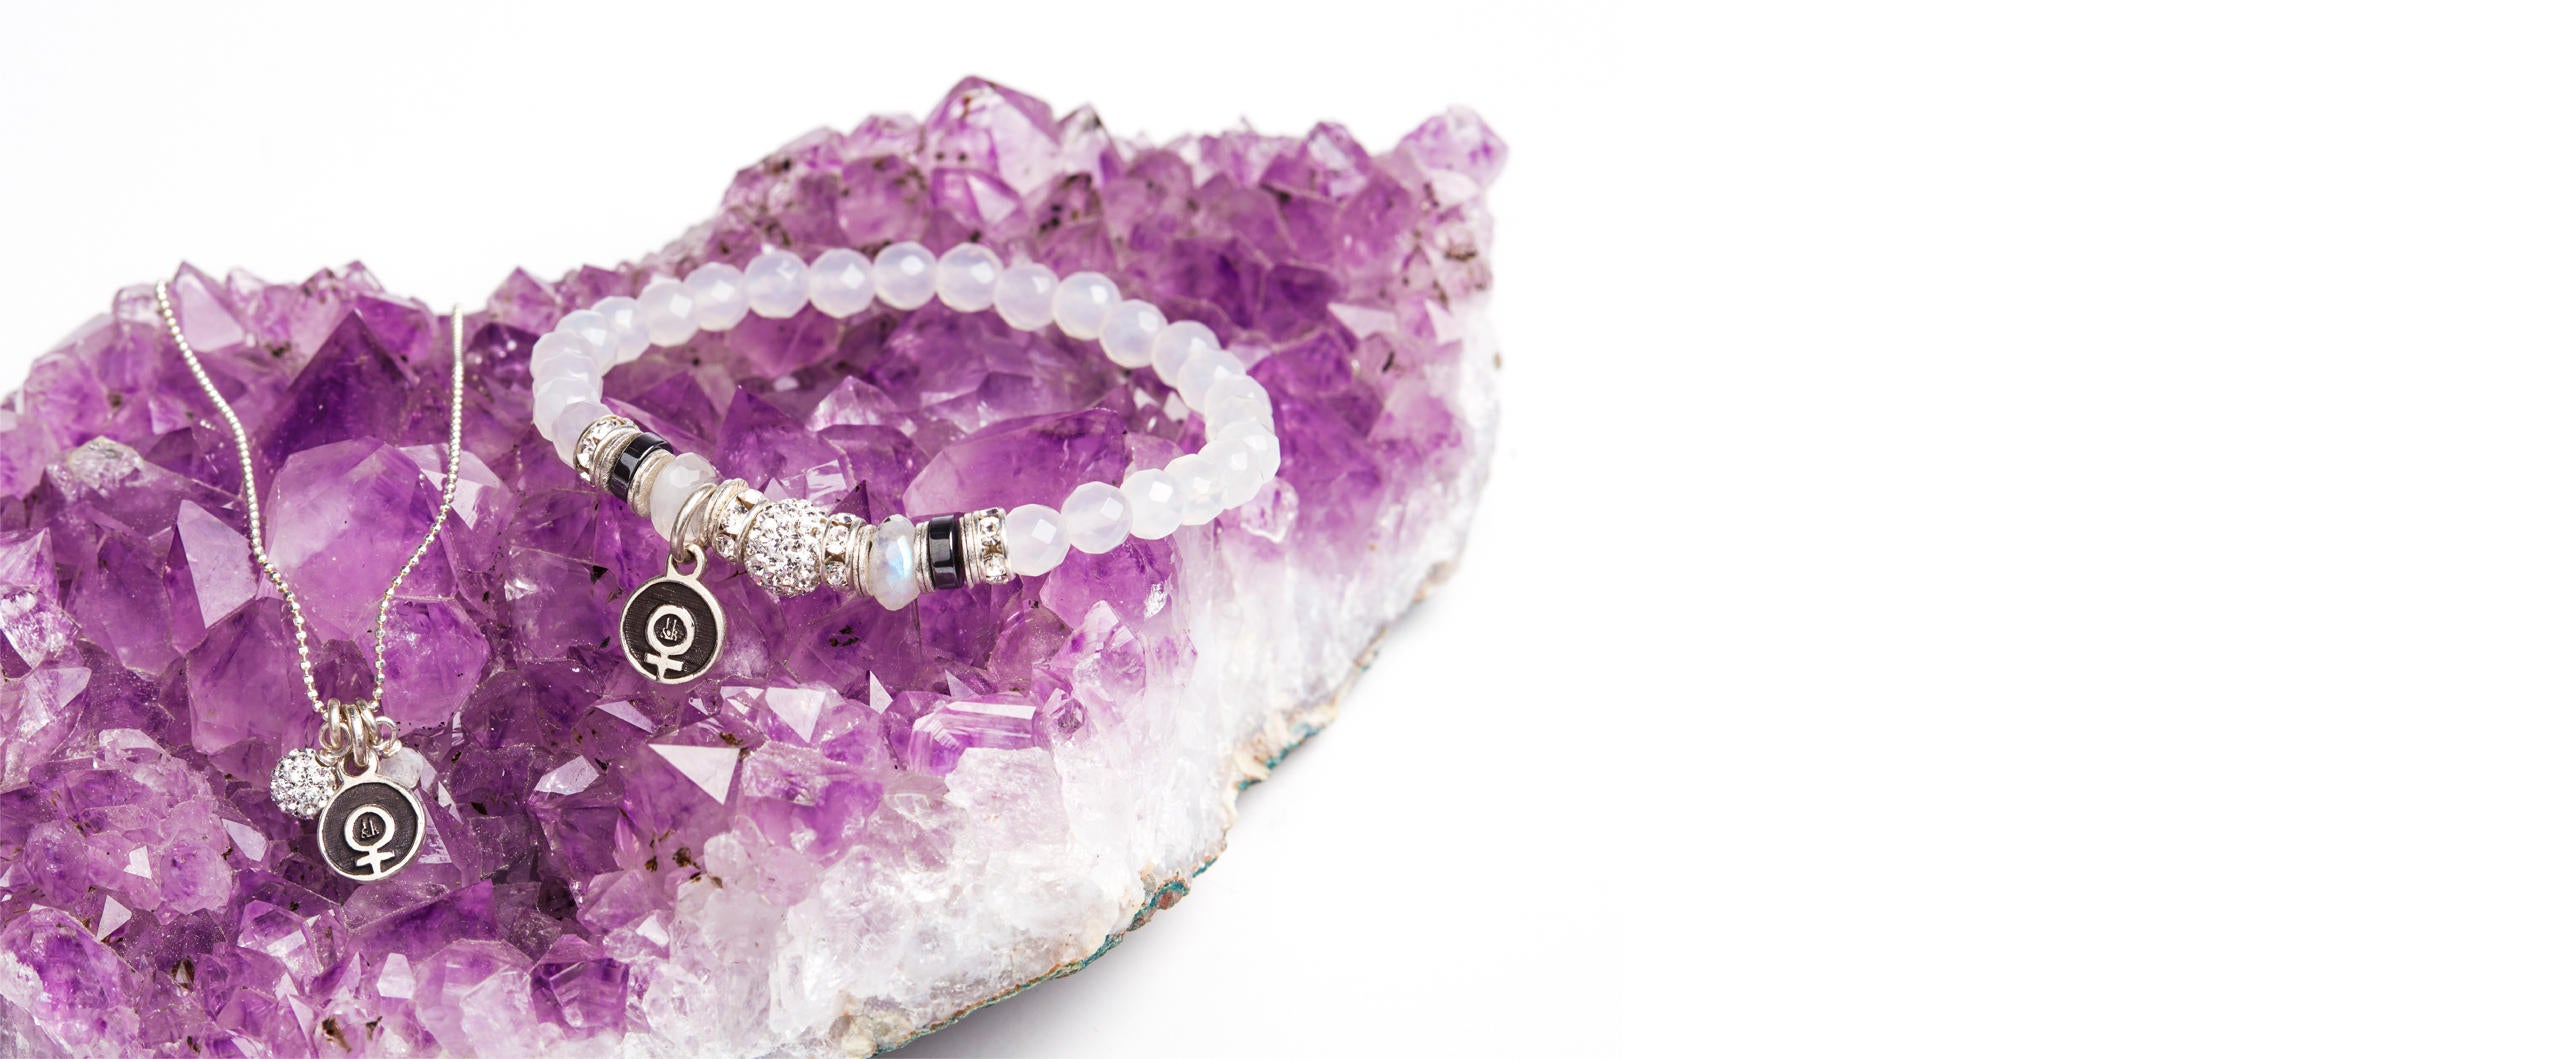 Venus necklace and bracelet laying on an amethyst gemstone